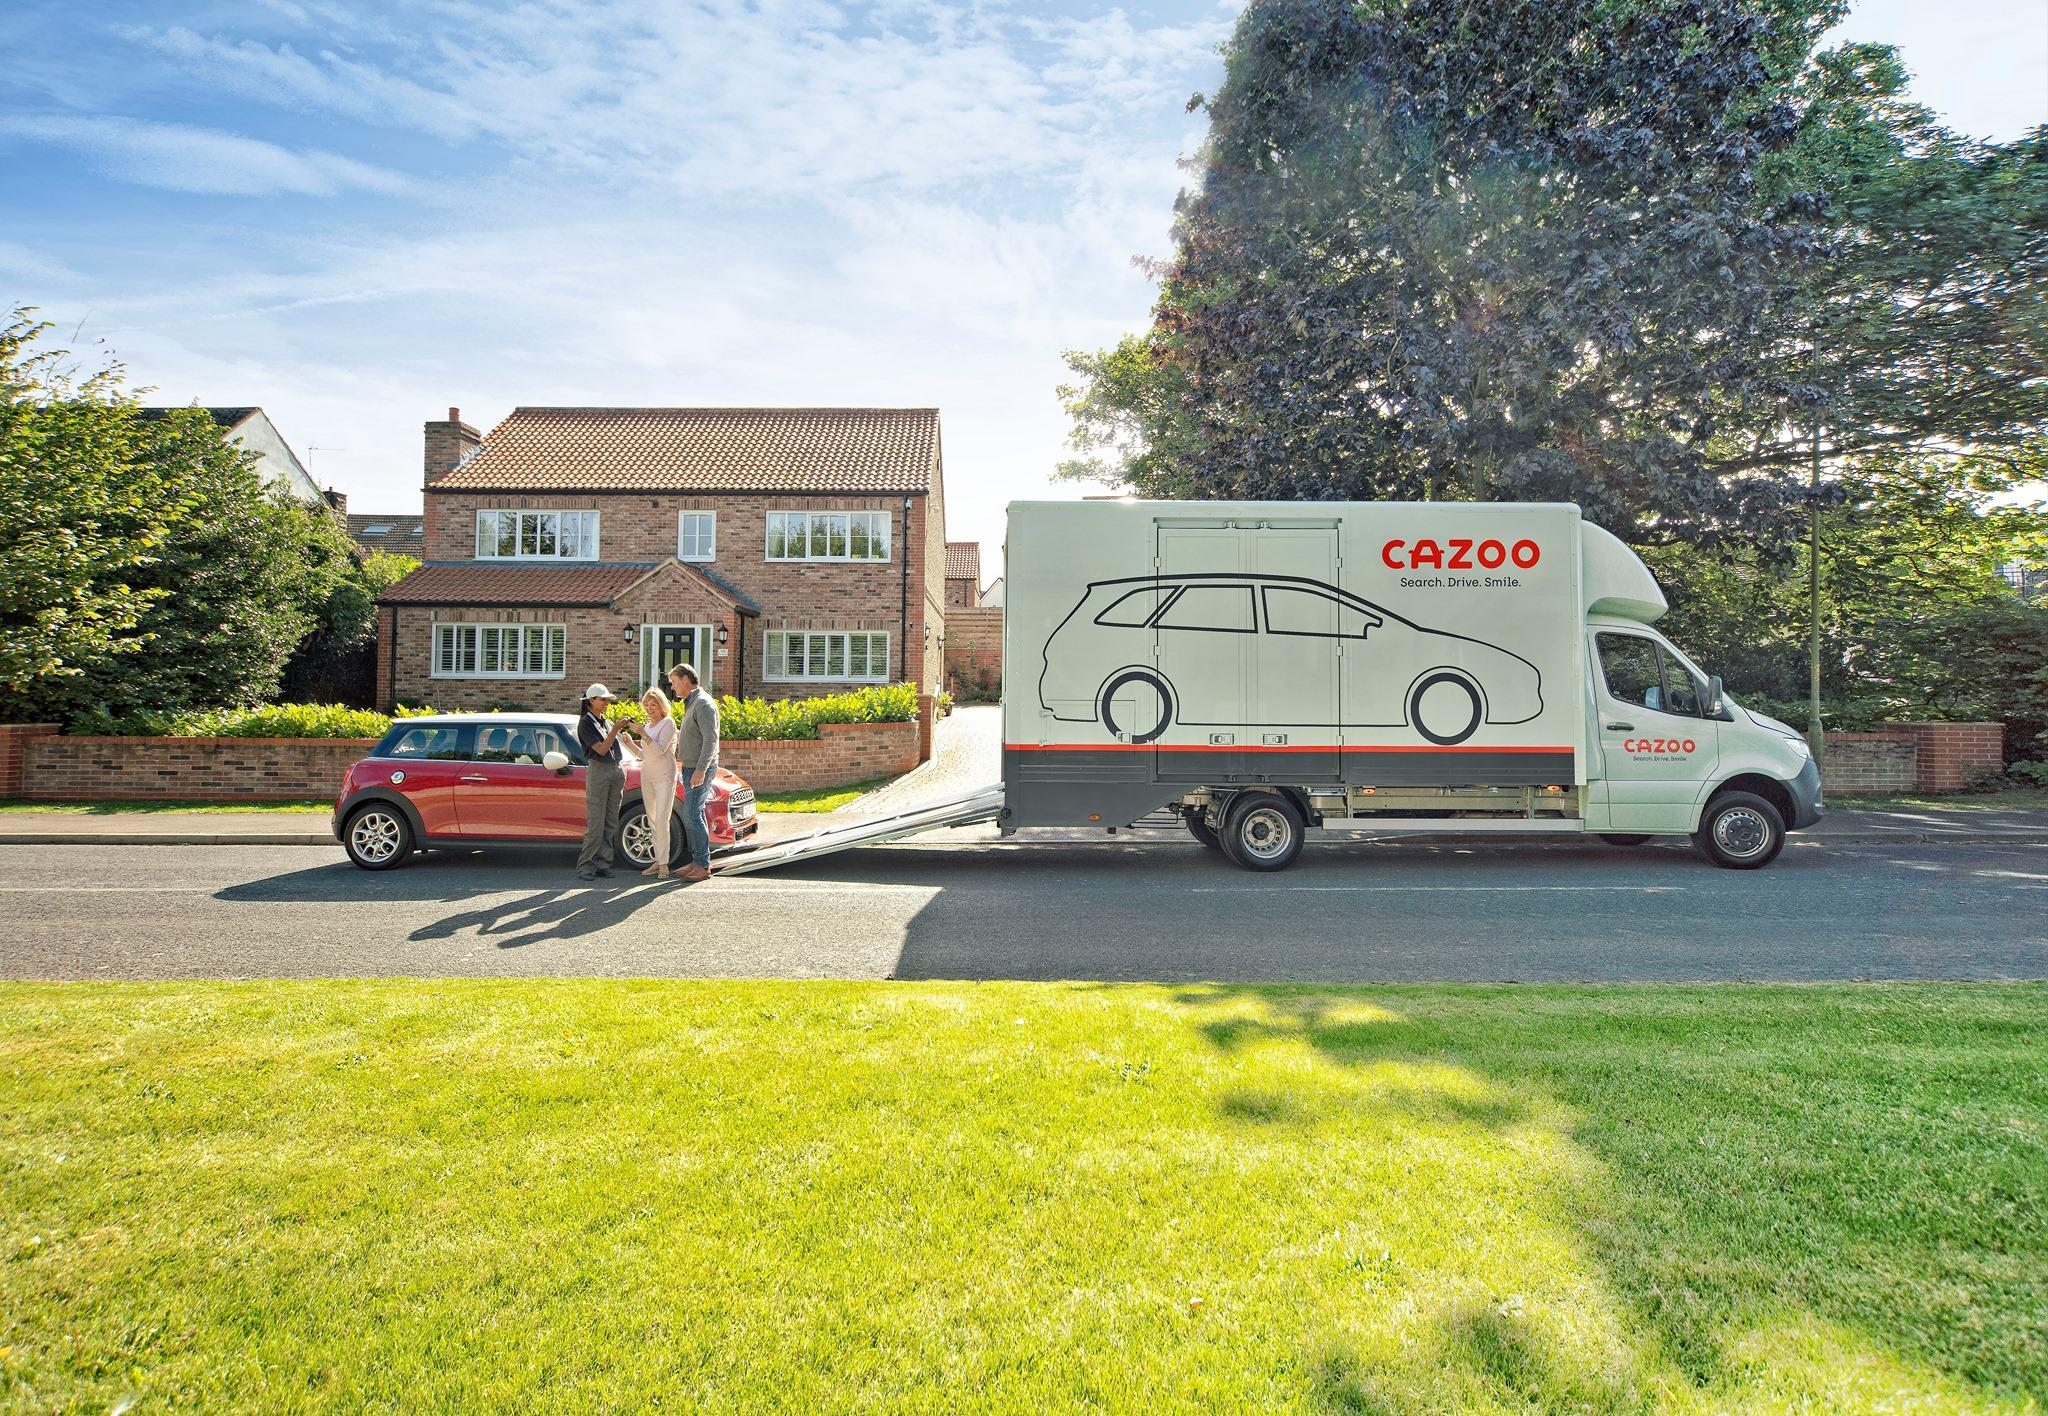 A used car being delivered by Cazoo